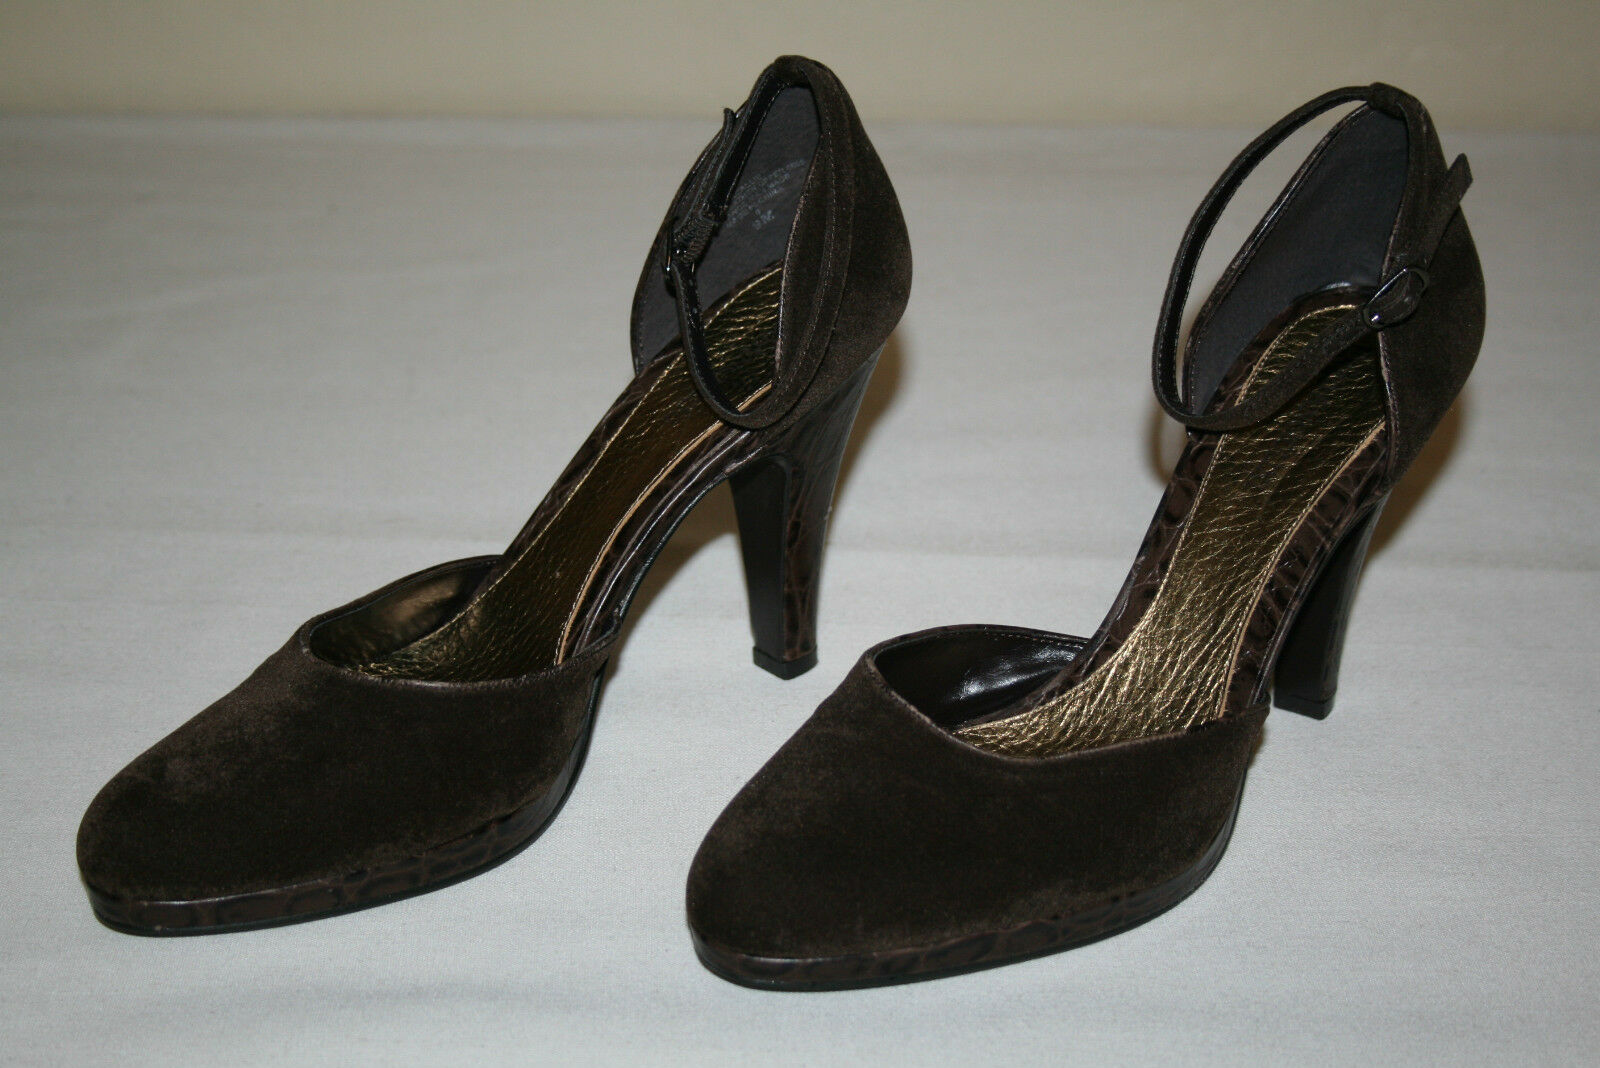 Enzo Angiolini Womens Sz 9 M Dark Brown Ankle Strap 4 ¼ Inch High Heels shoes